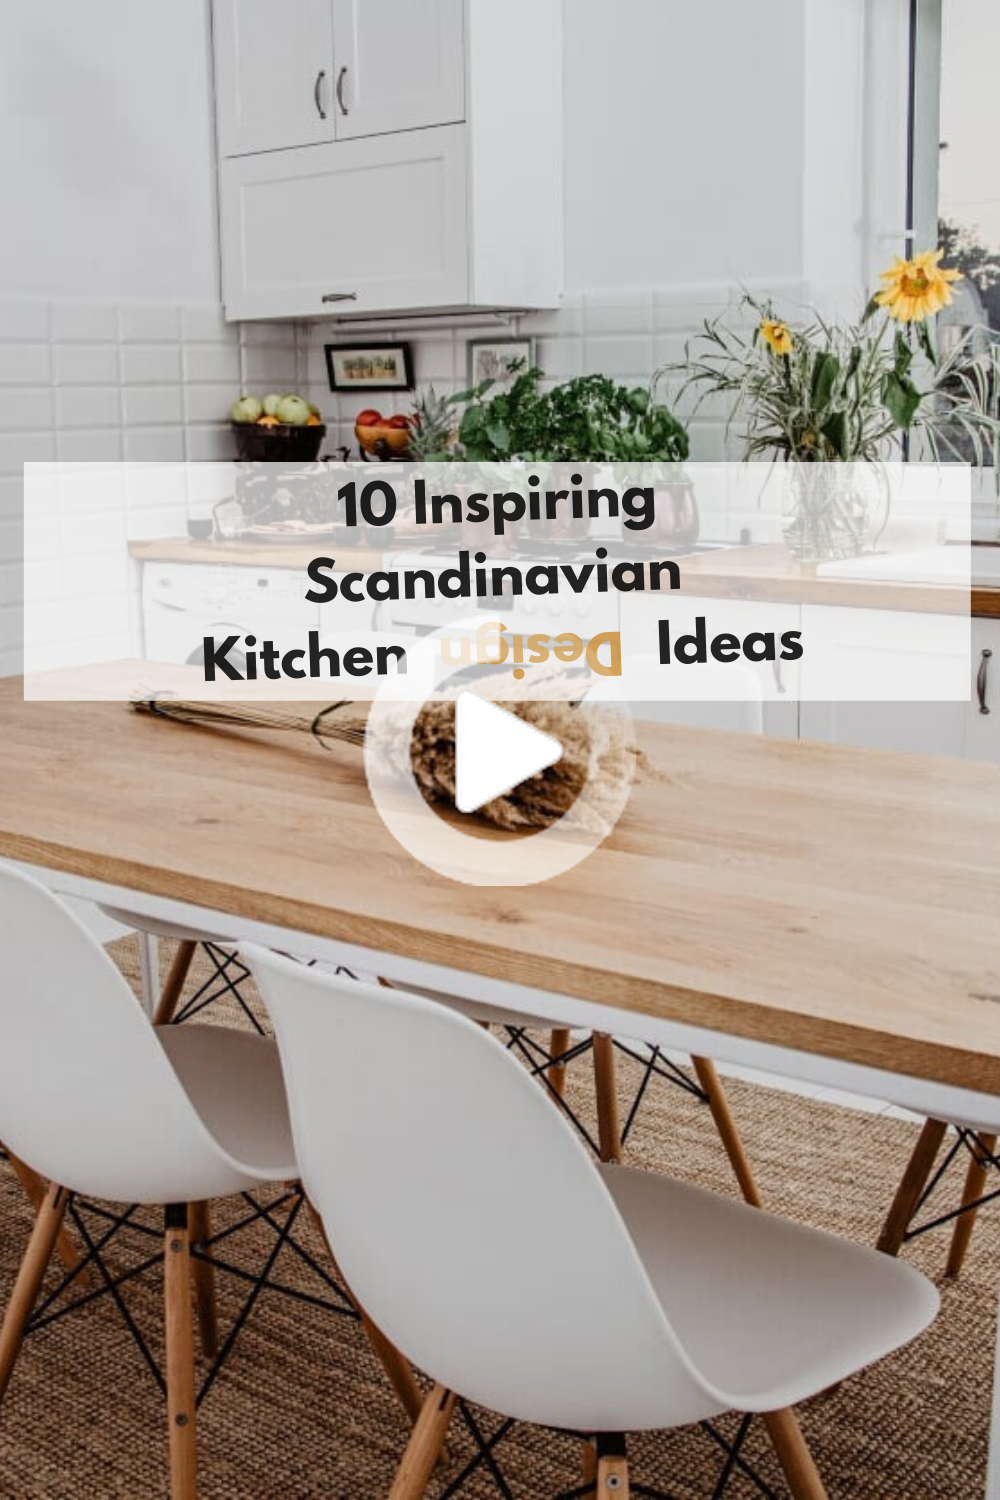 Looking For Inspiration For A New Scandinavian Style Kitchen Design In 2020 Kitchen Design Scandinavian Kitchen Design Scandinavian Kitchen